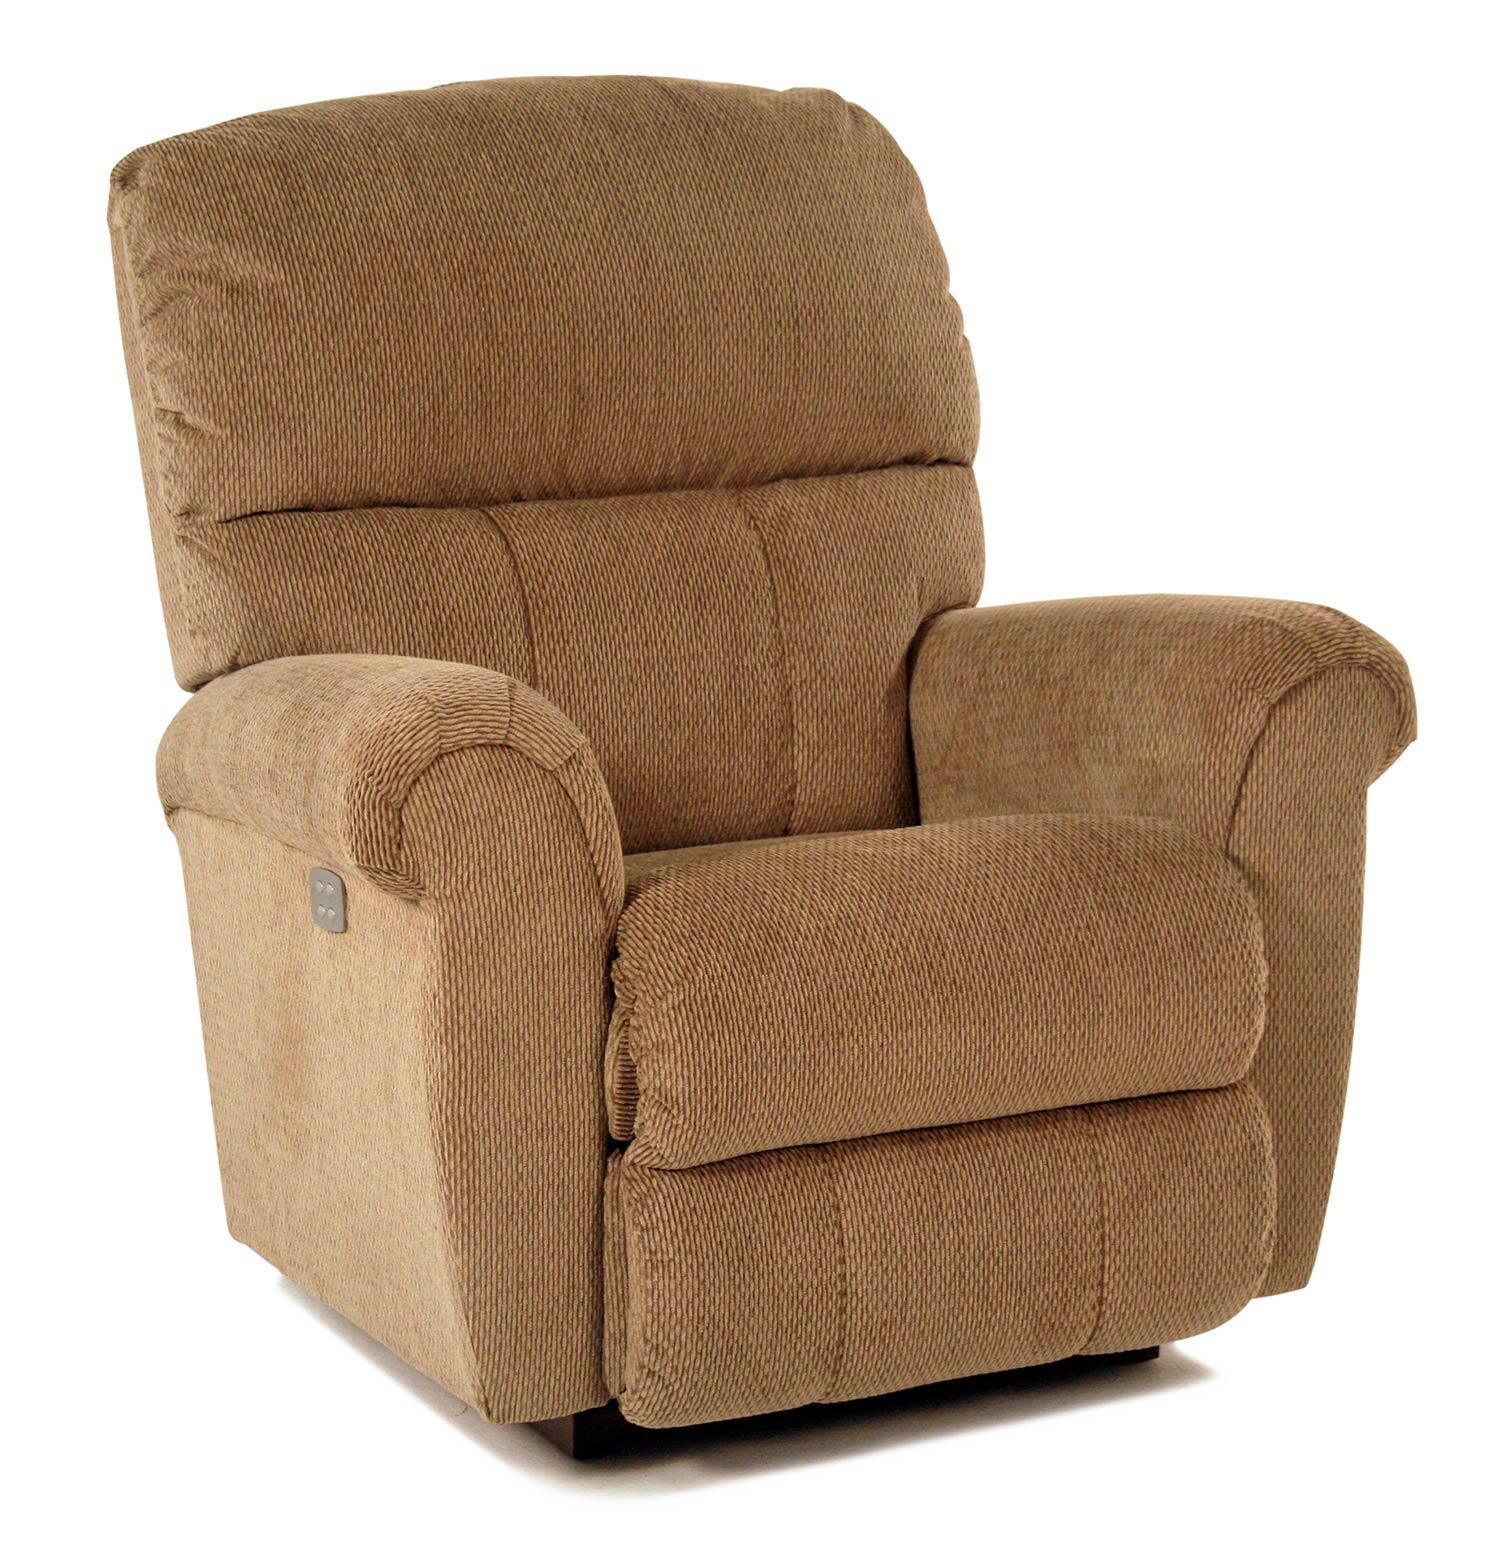 La-Z-Boy Zachary Power-Recline XR RECLINA-ROCKER® - Item Number: P10701-C108173